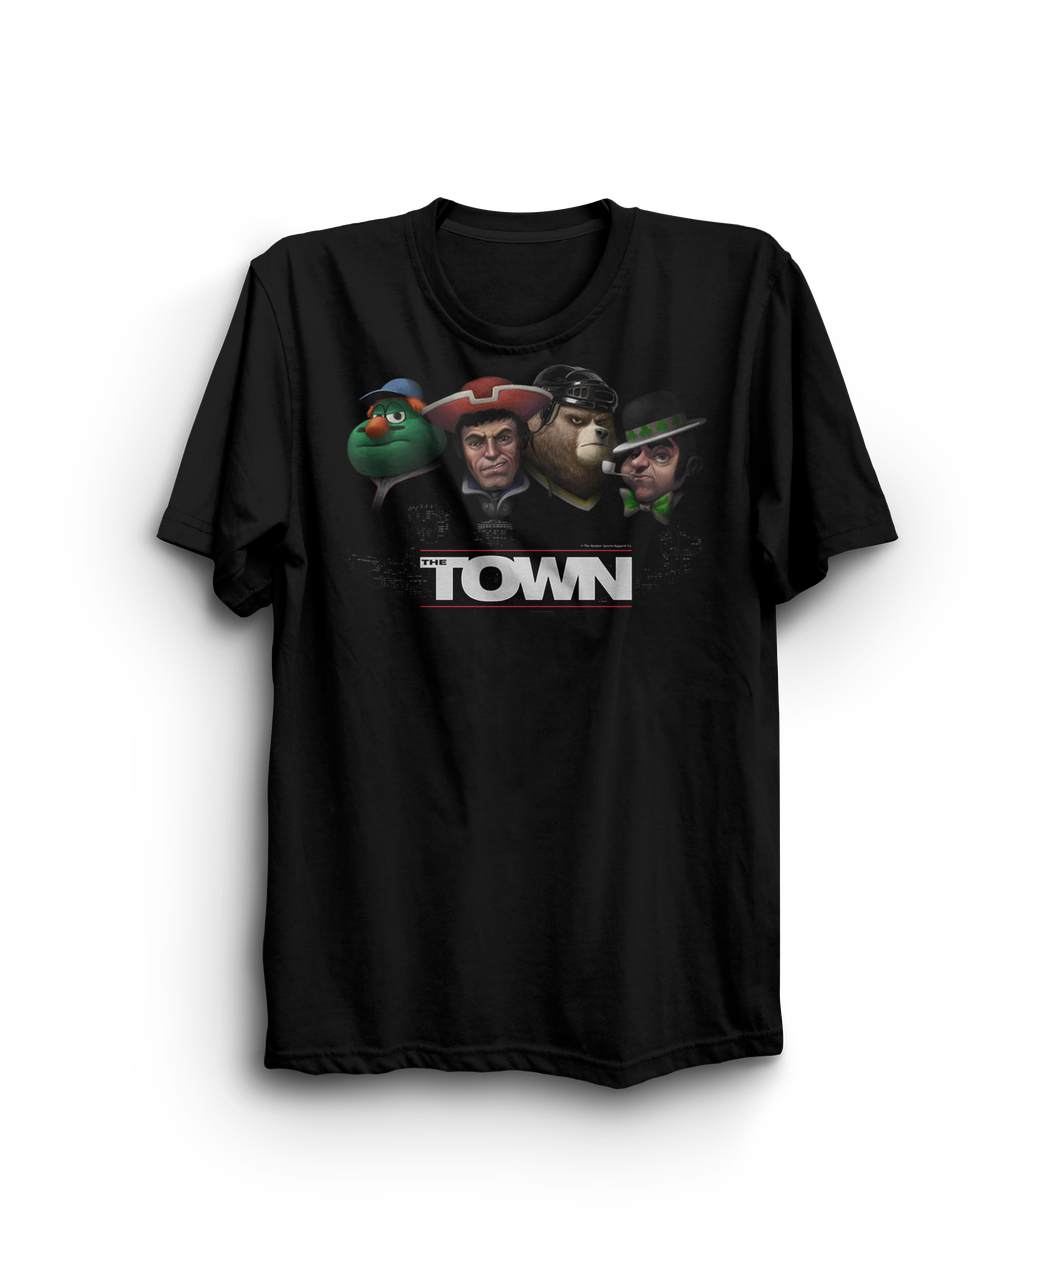 """The Town T-shirt """"wrong city to mess with"""""""